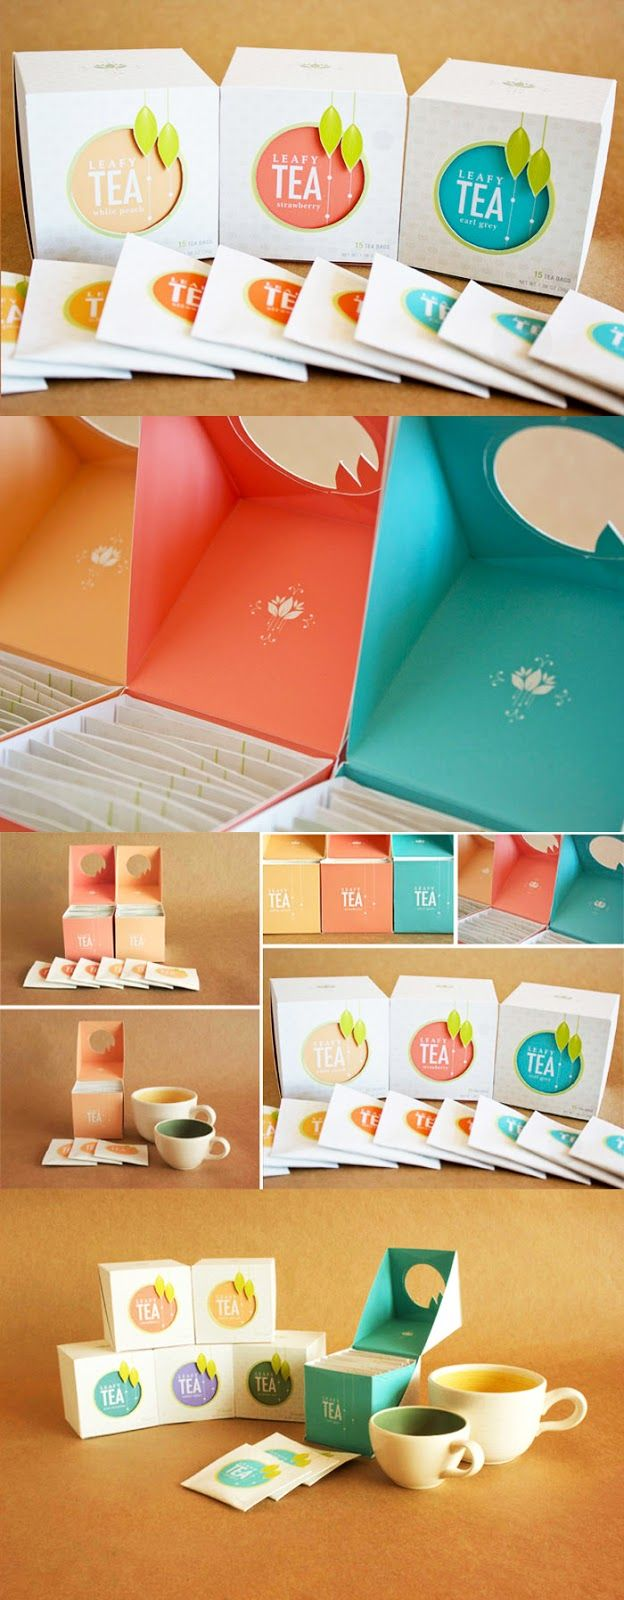 THIẾT KẾ BAO BÌ ĐẸP THIẾT KẾ BAO BÌ HỘP TRÀ TEA PACKAGE | TEA PACKAGING DESIGN LEAFY TEA PACKAGING DESIGNED BY Belinda Shih